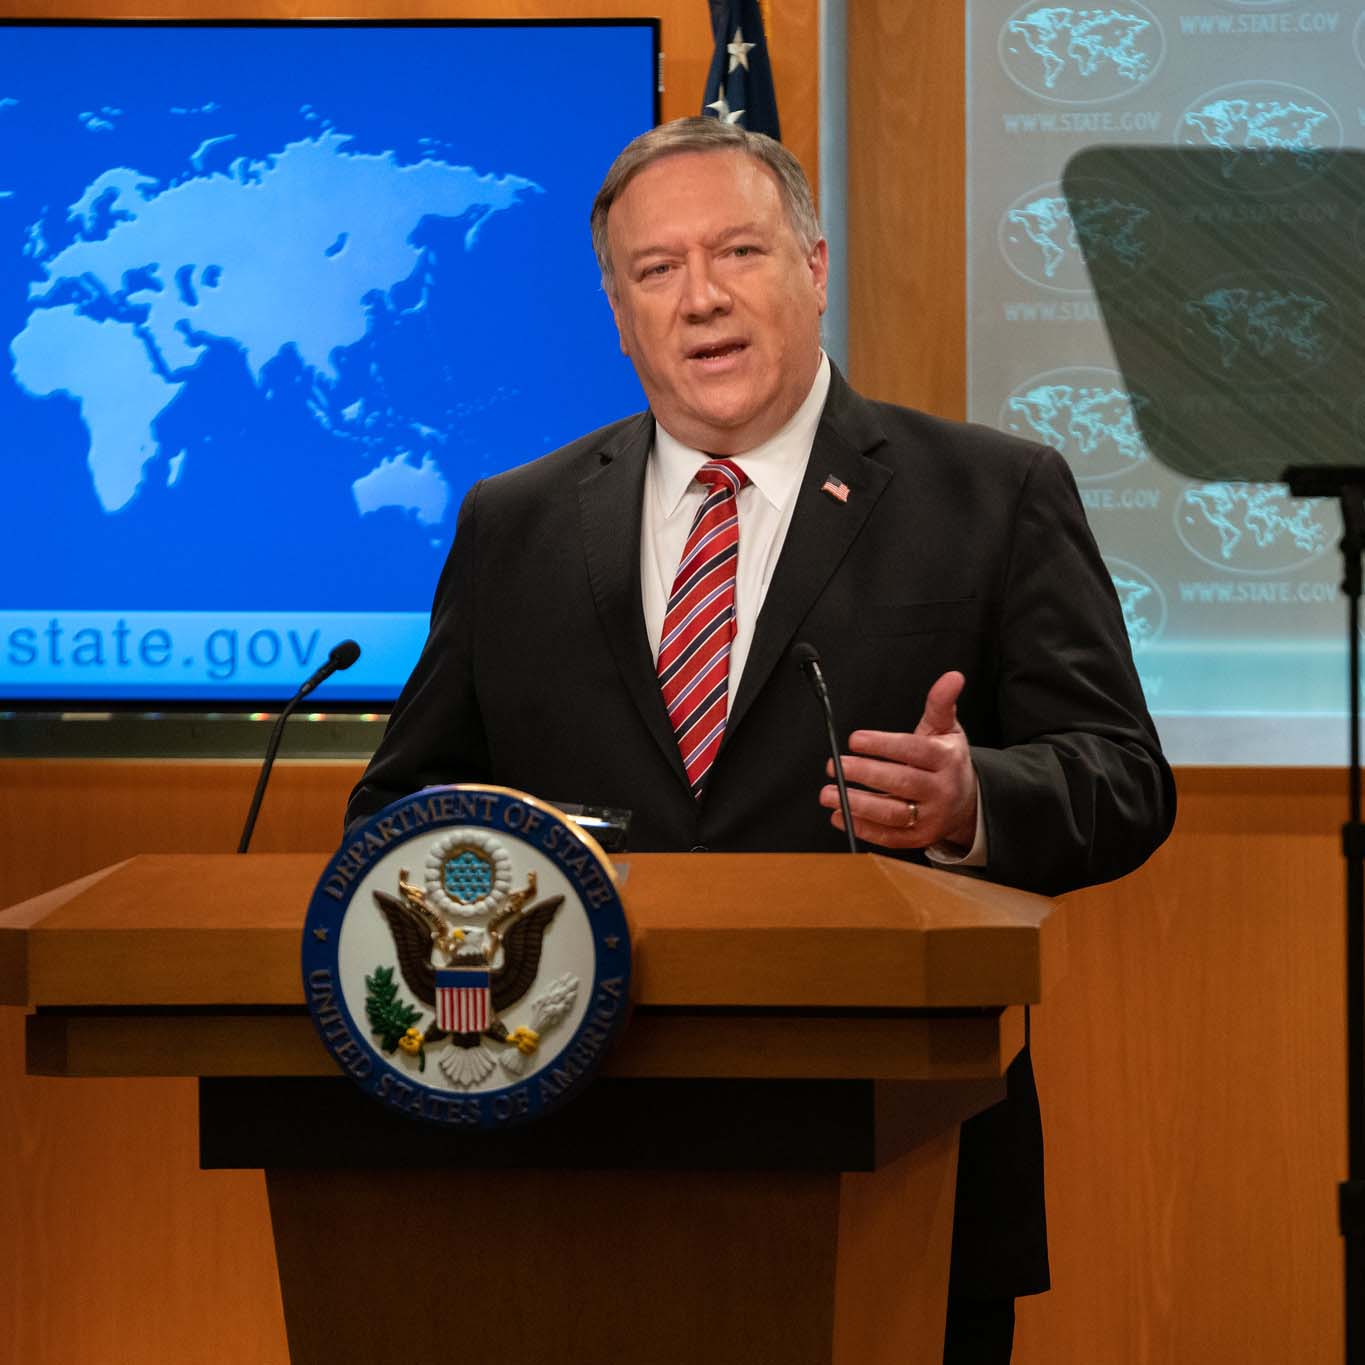 U.S. Secretary of State Michael R. Pompeo delivers remarks to the media in the Press Briefing Room, at the Department of State in Washington, D.C., on April 29, 2020. [State Department Photo by Ronny Przysucha / Public Domain]